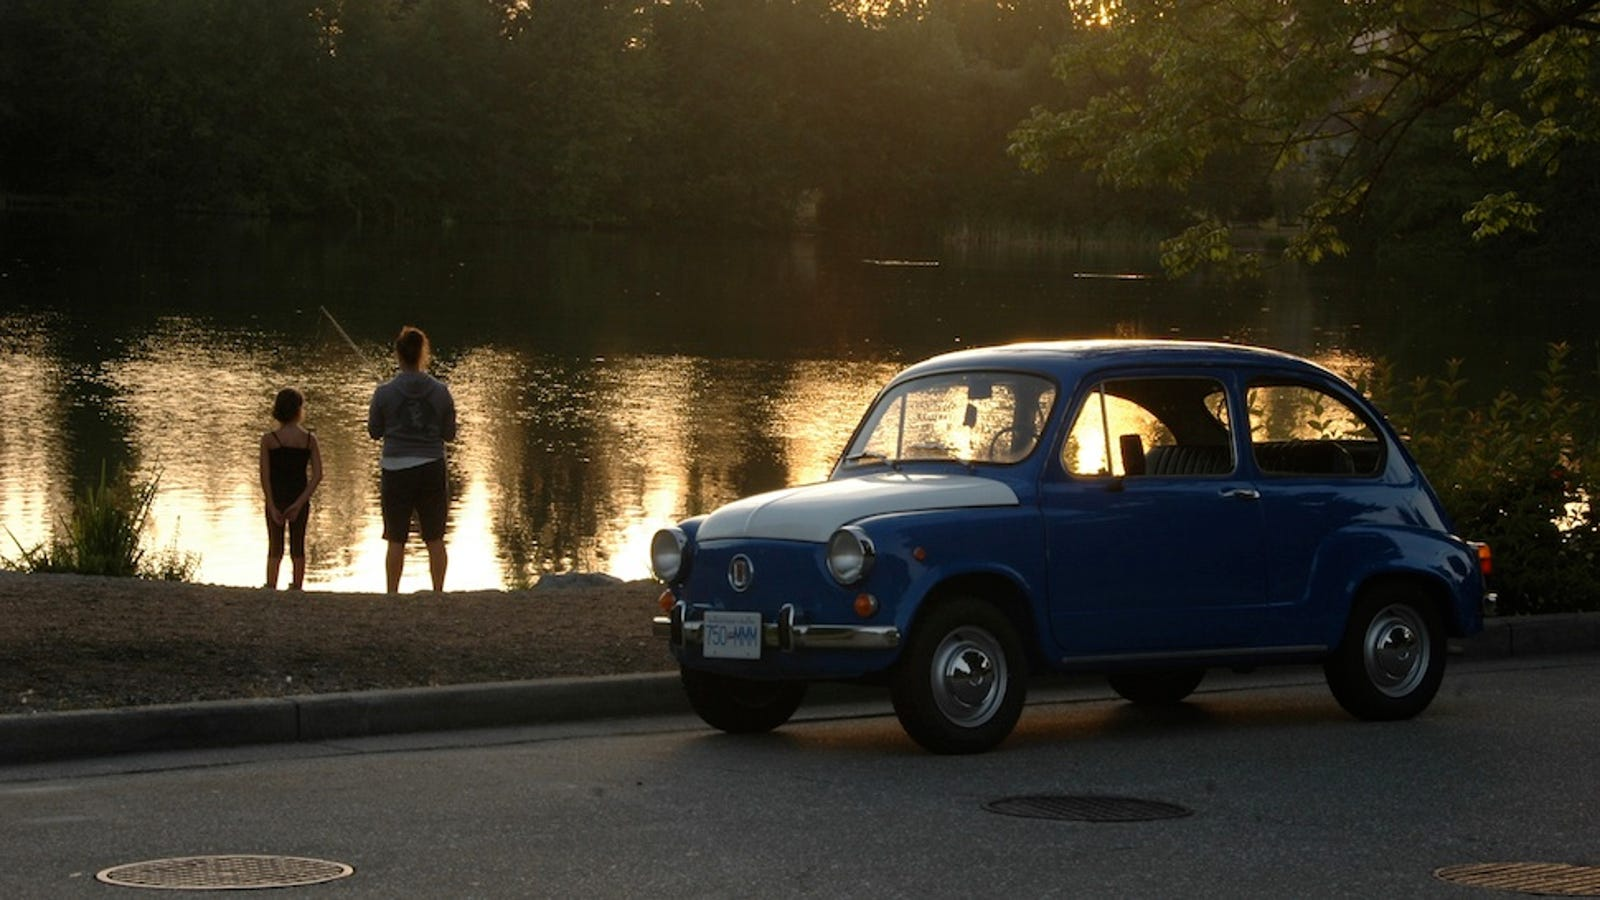 Fiat 600 - a monopoly with an Italian flavor 46